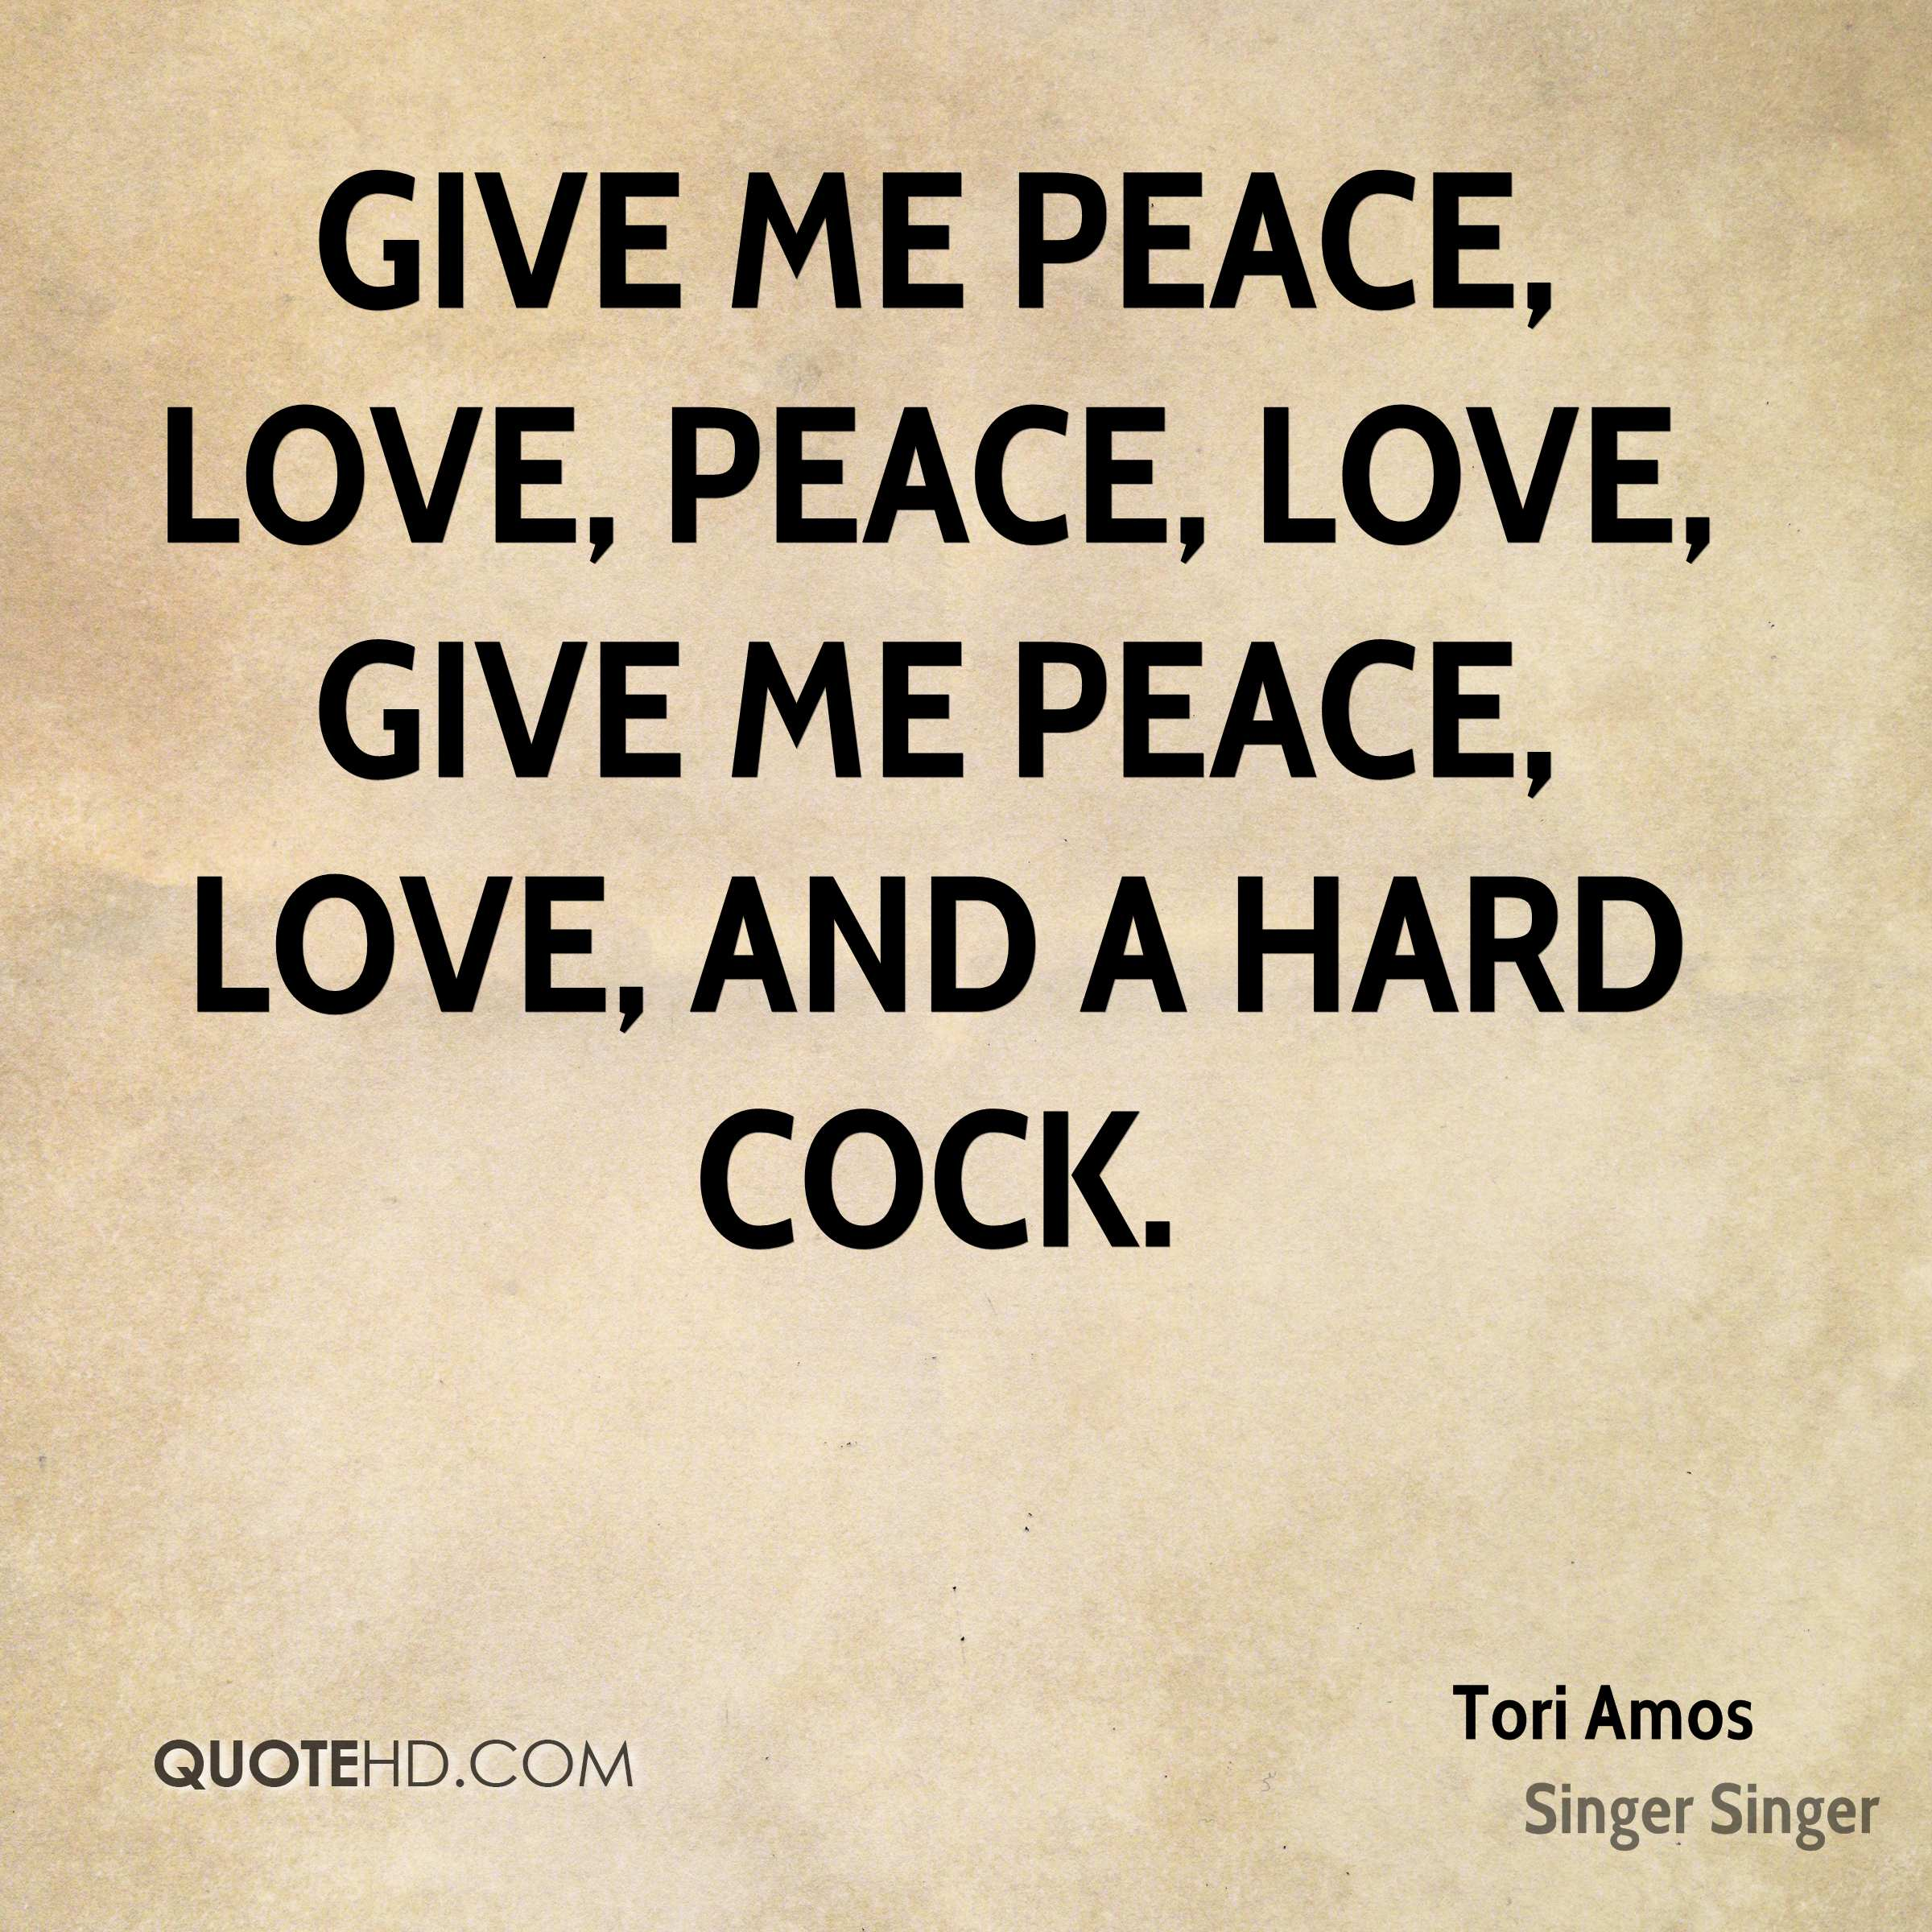 Quote About Peace And Love Tori Amos Quotes  Quotehd